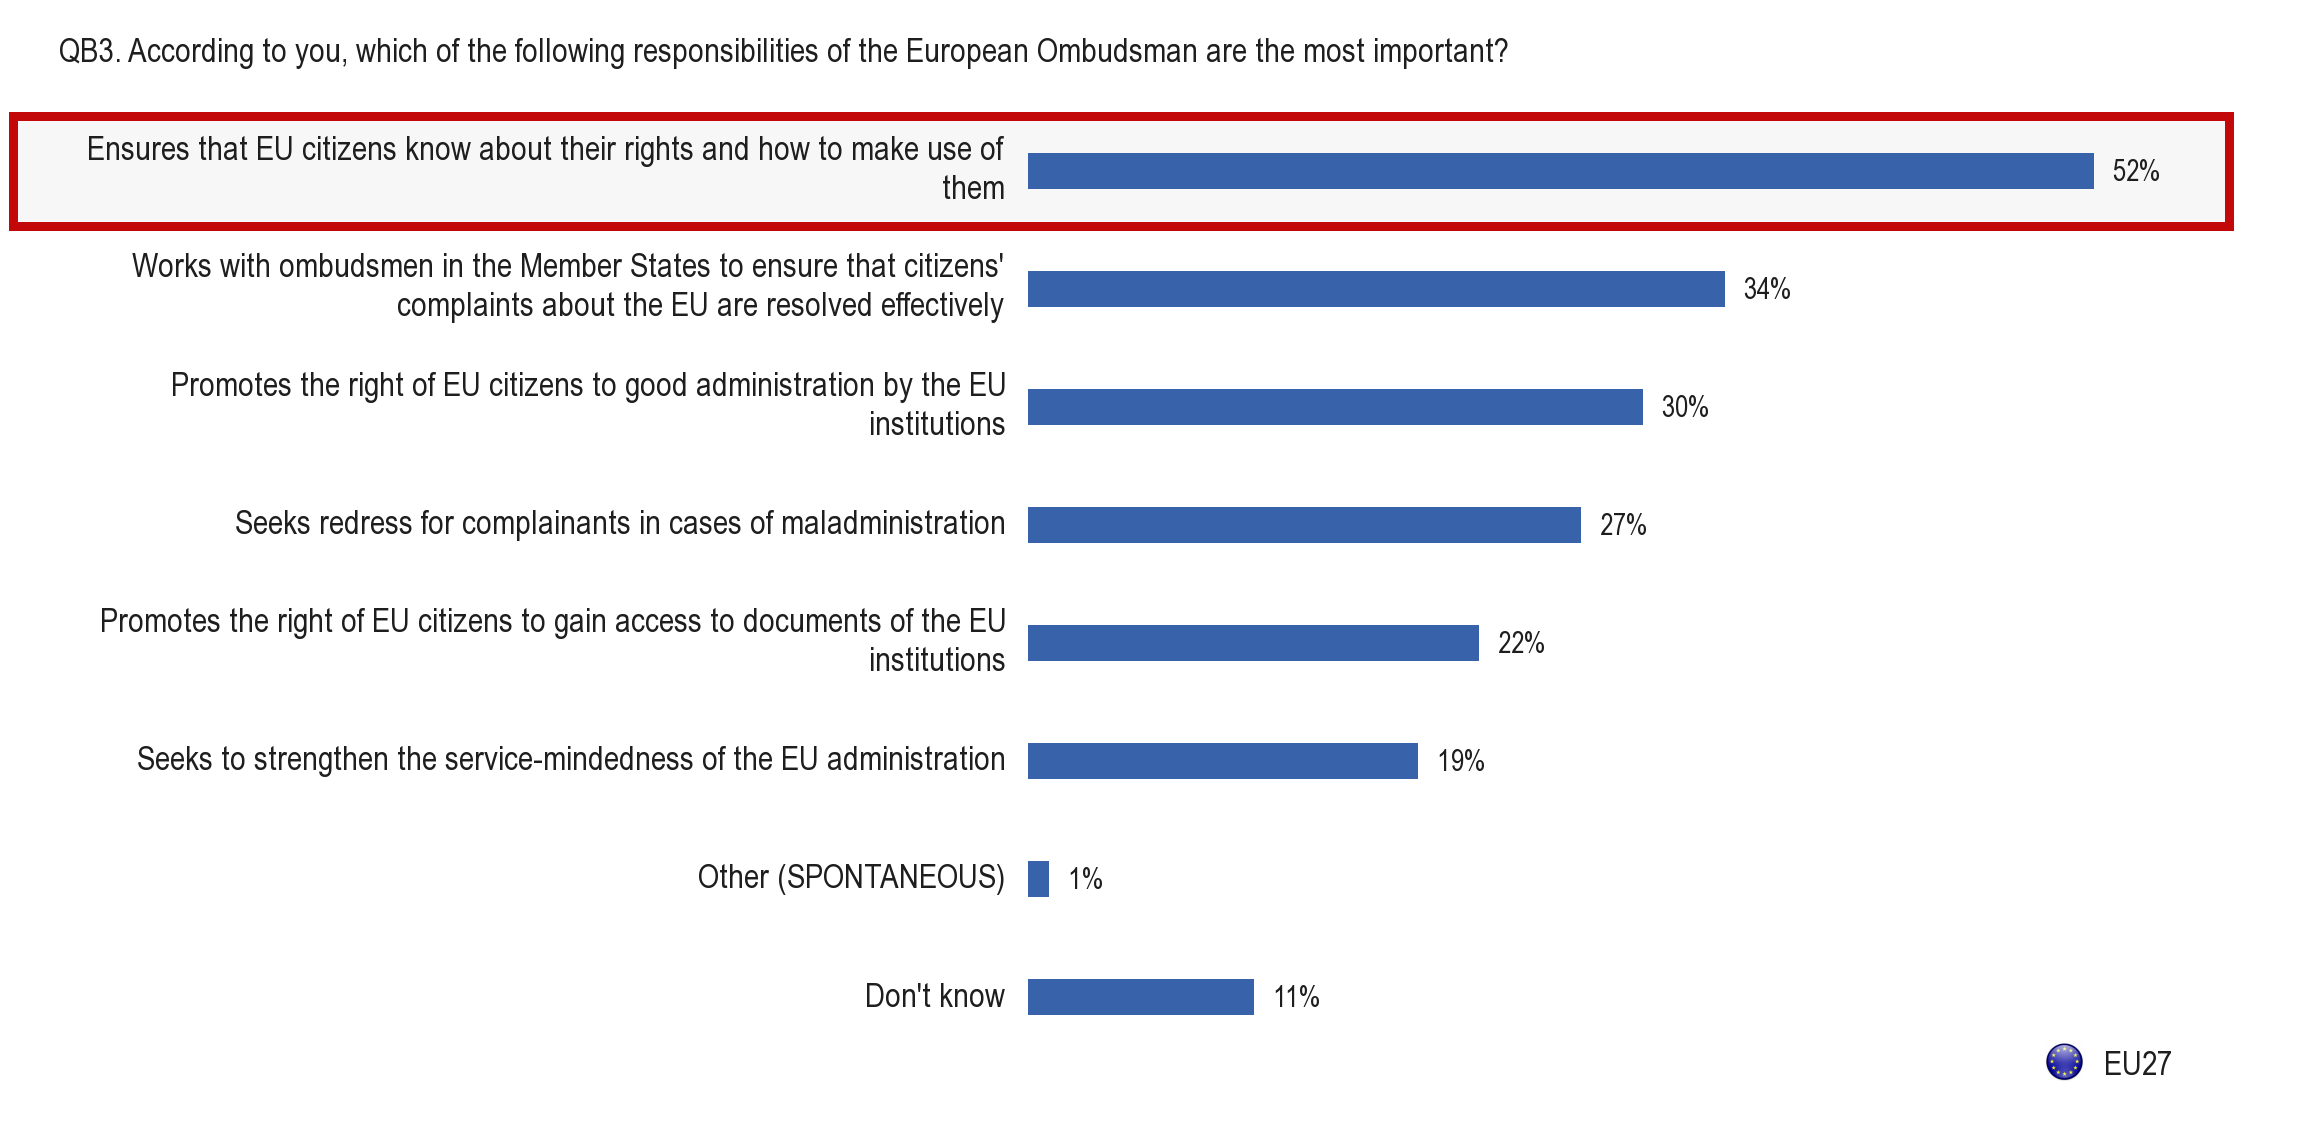 QB3. According to you, which of the following responsibilities of the European Ombudsman are the most important?